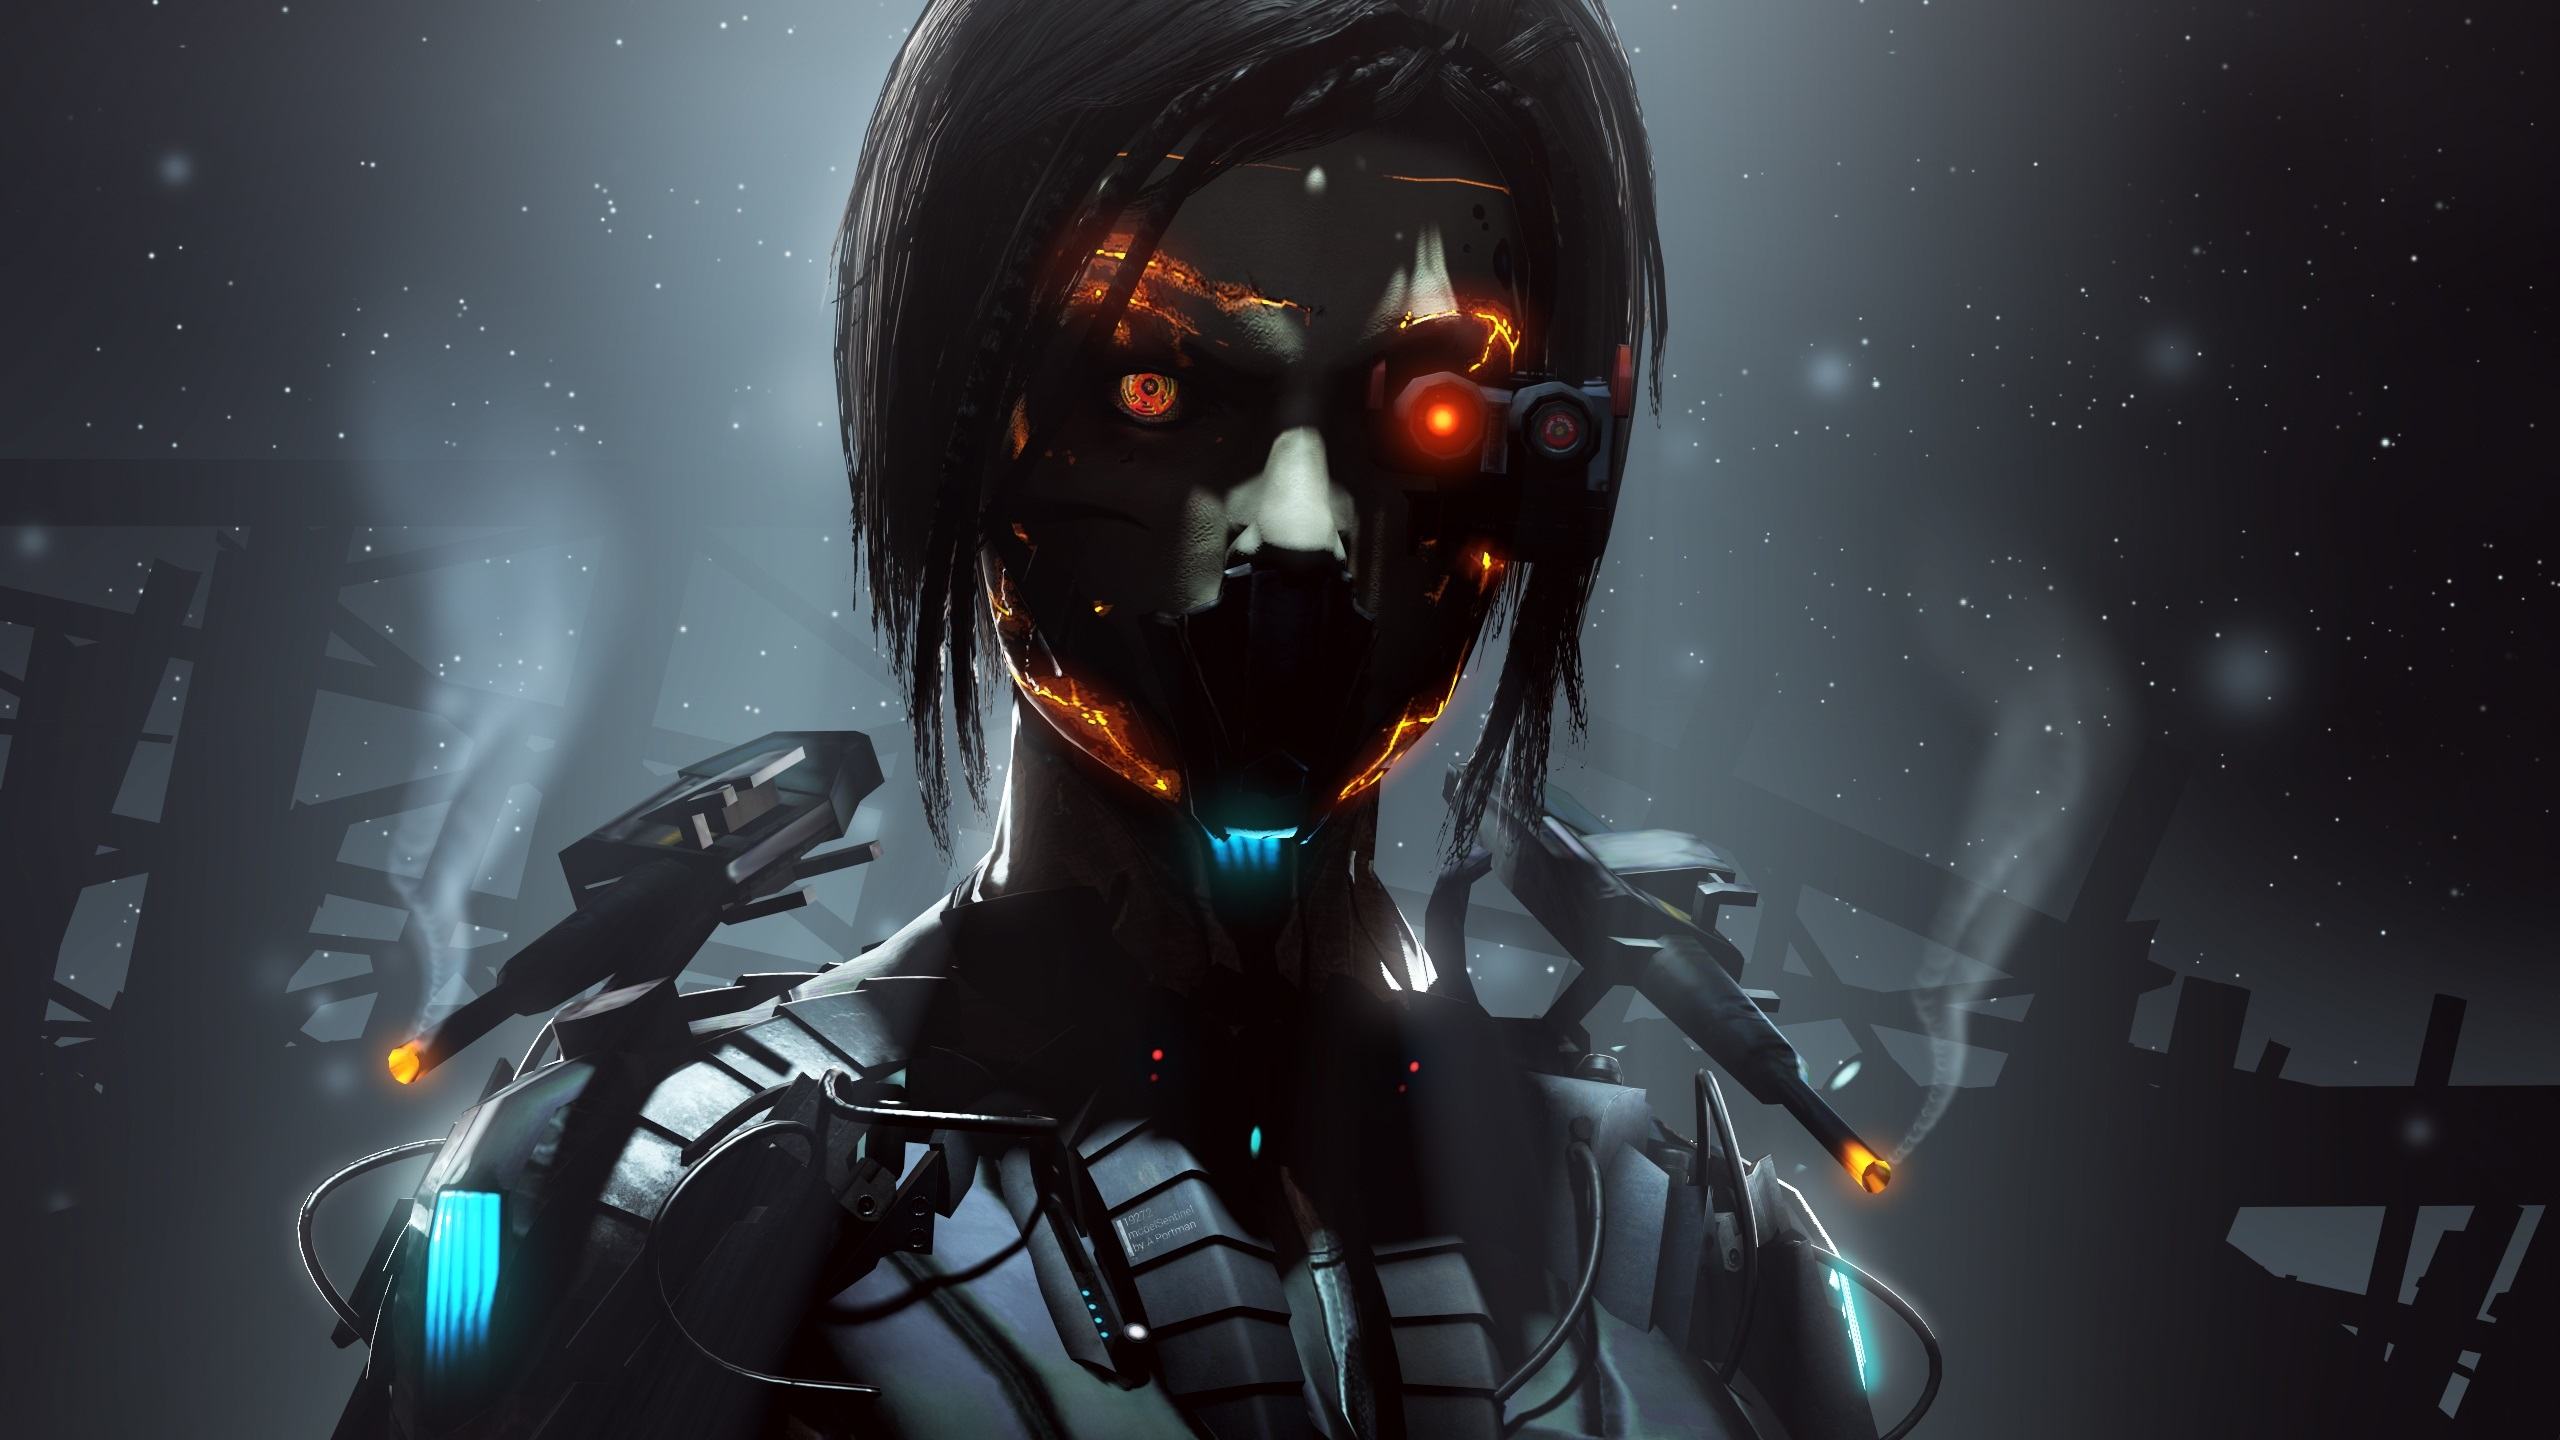 wallpaper cyborg, robot, girl, fantasy, creative pictures 2560x1440